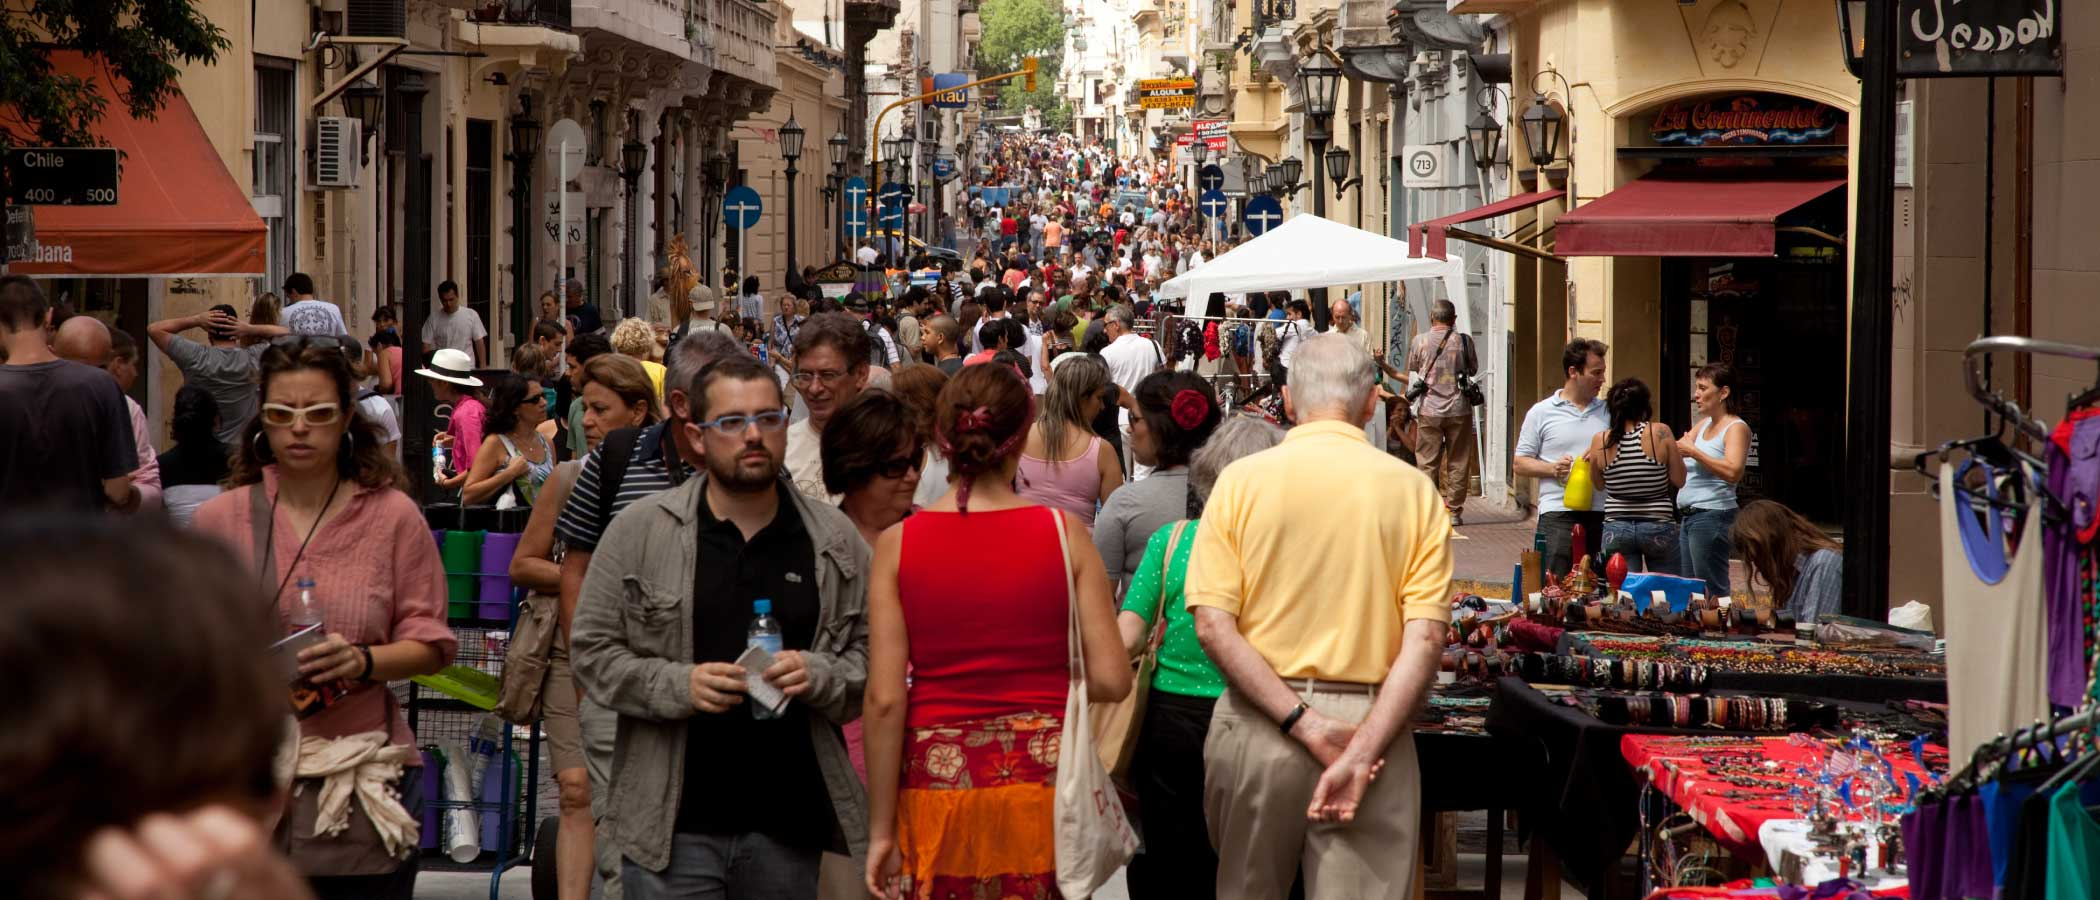 Many people walking on a pedestrian alley in Buenos Aires, Argentina.